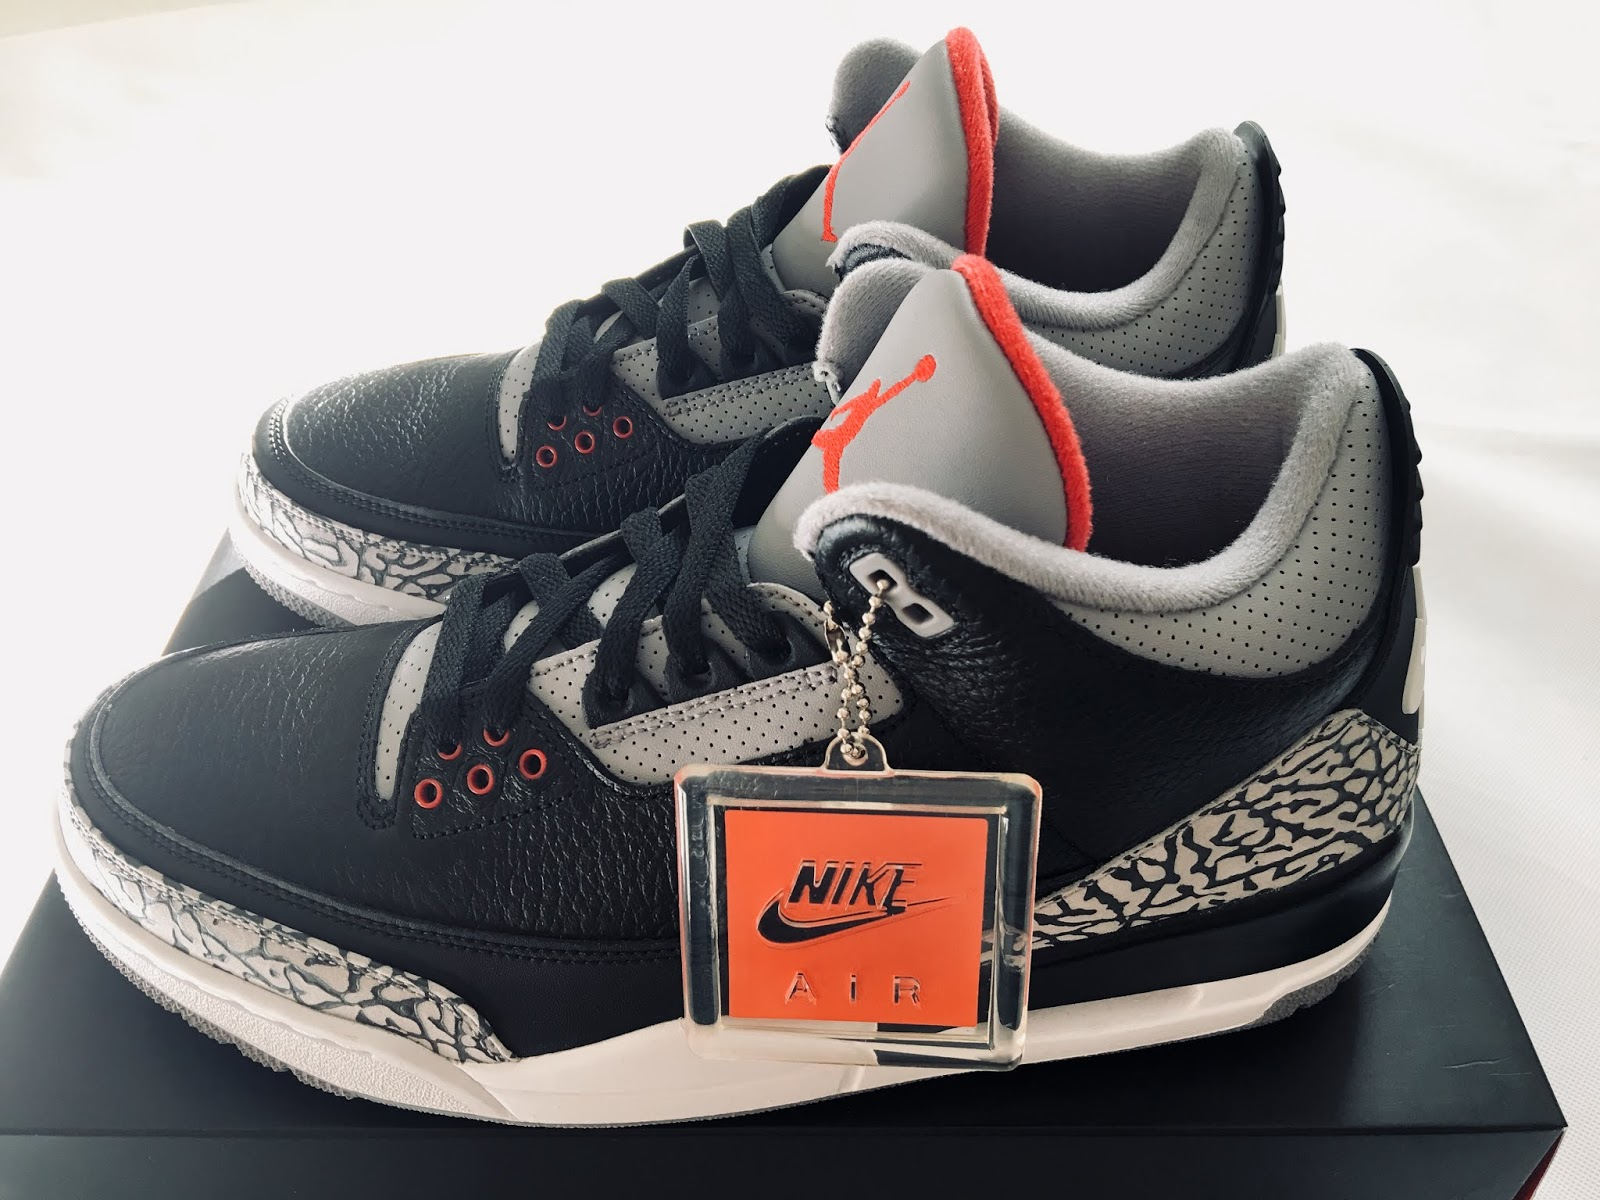 new product 0861d 77e32 Air Jordan 3 Retro OG Black Cement 854262-001